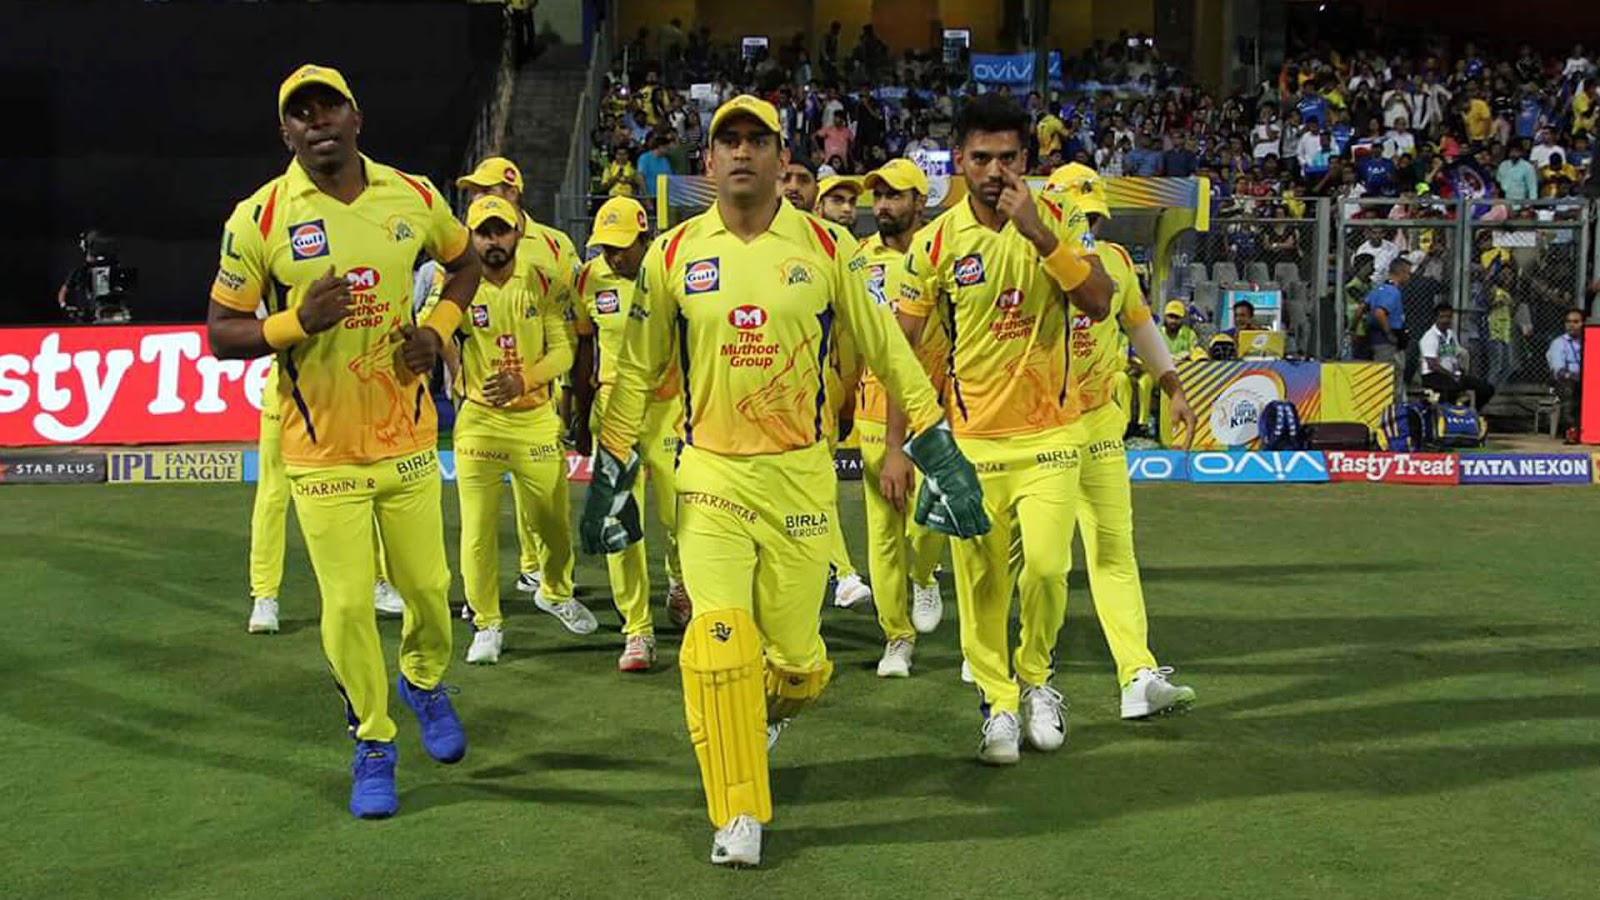 chennai super kings hd wallpapers download free 1080p colorfullhdwallpapers upcoming latest bollywood movies hollywood movies festival hd wallpapers chennai super kings hd wallpapers